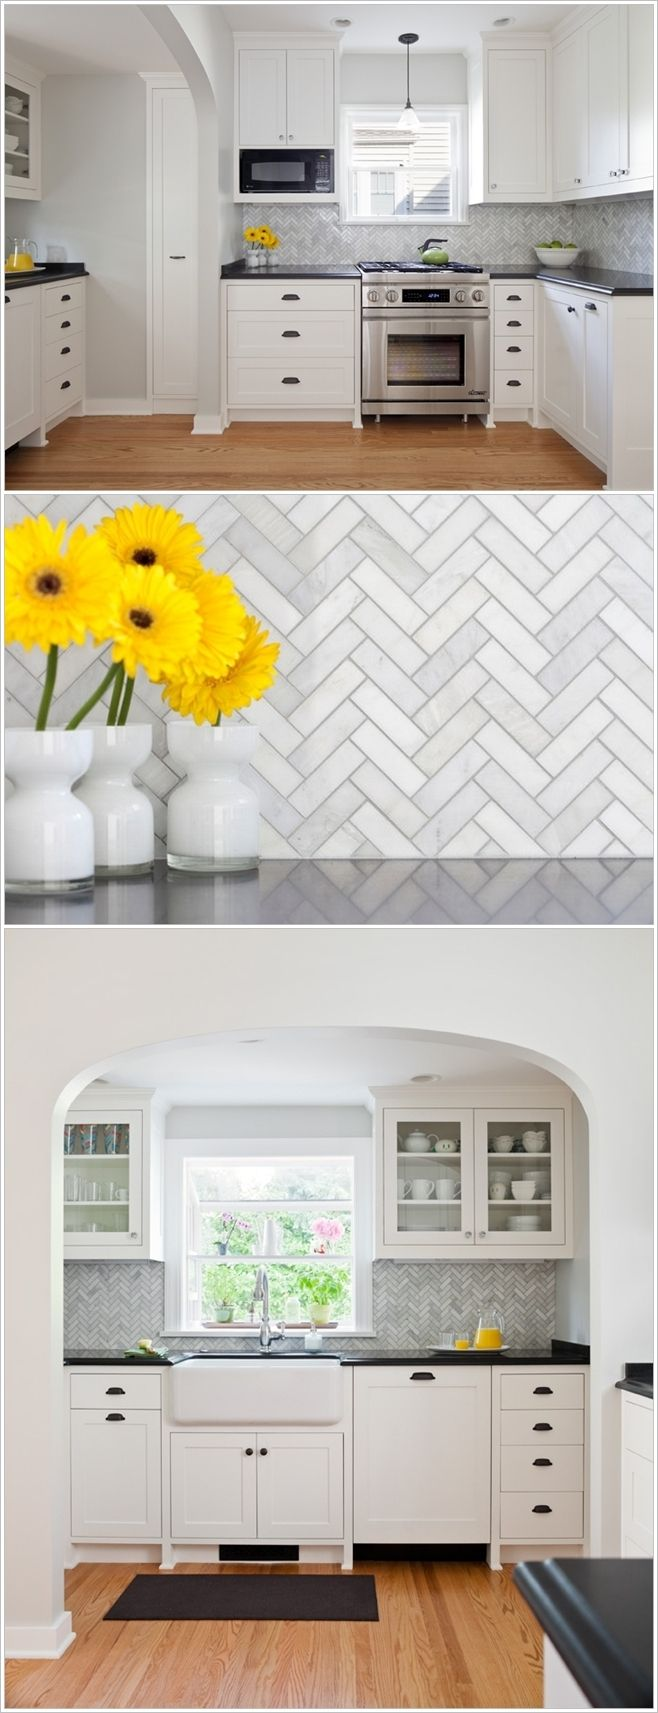 25 best herringbone backsplash ideas on pinterest small marble full kitchen love rom architecture studio this backsplash has a zig zag pattern repeated all over with the tiles having a mixed colour of white and grey